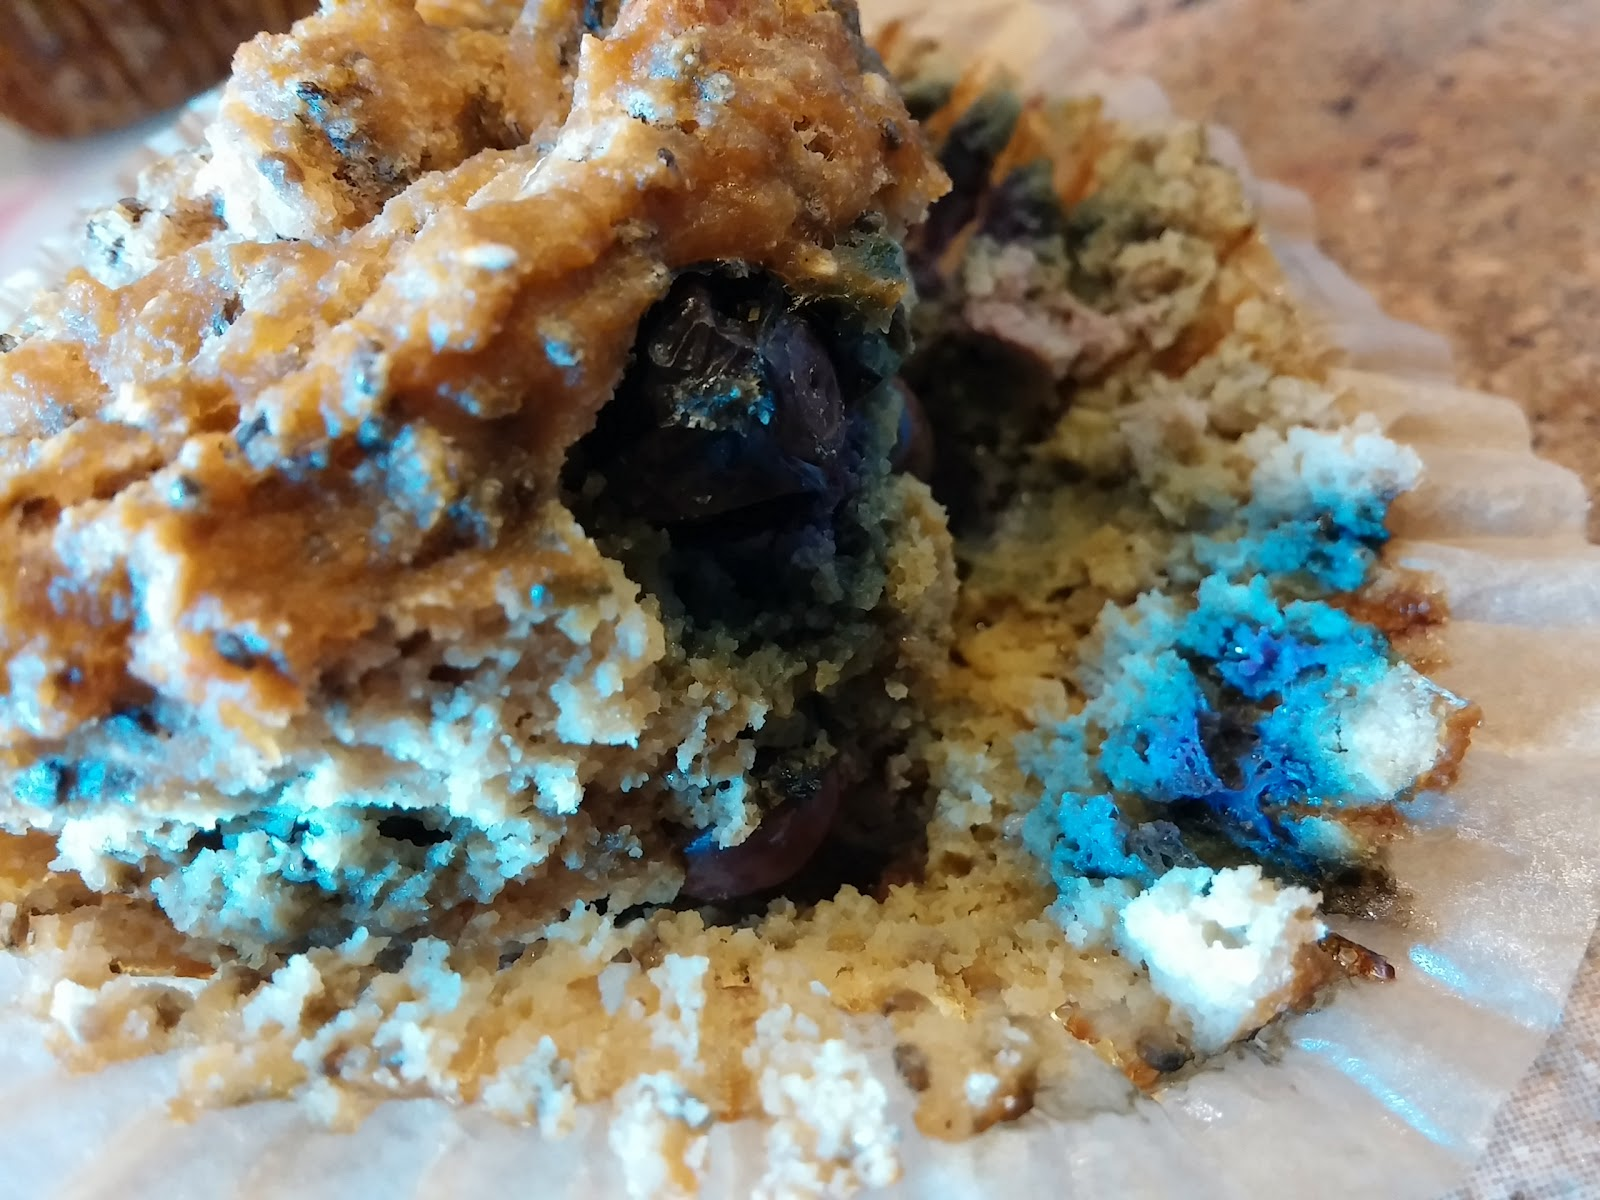 Challenge Compliant Blueberry Chia Coconut Applesauce Breakfast Muffins Oh My I Nourished In 30 I Paleo Vegeo